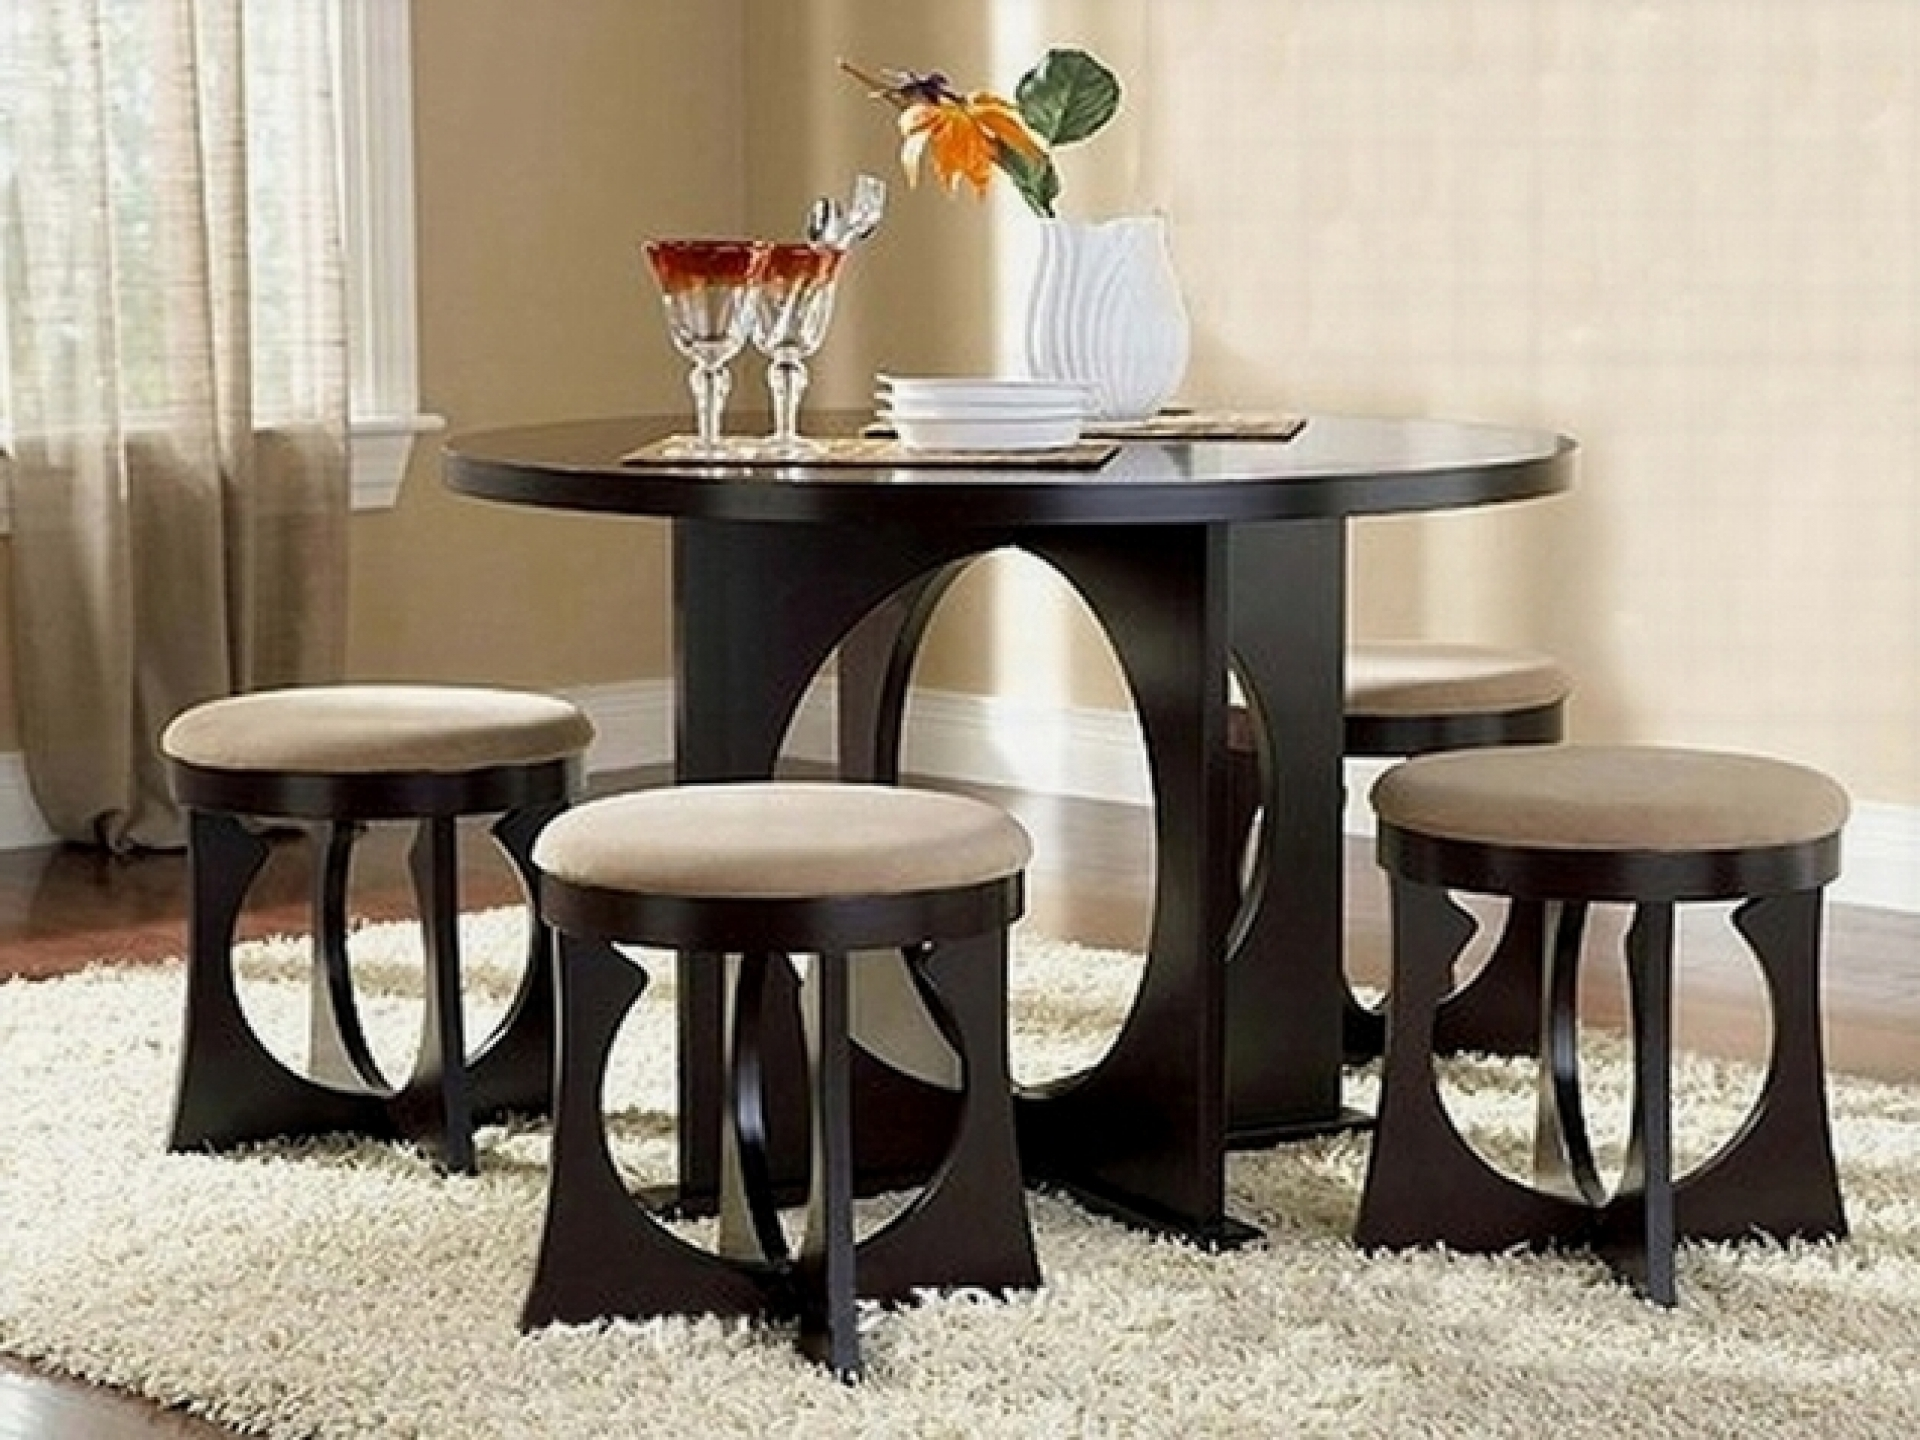 Dining Room Kitchen Table Sets For Small Areas Small Dining Table Pertaining To Most Up To Date Small Dining Tables And Bench Sets (View 18 of 25)